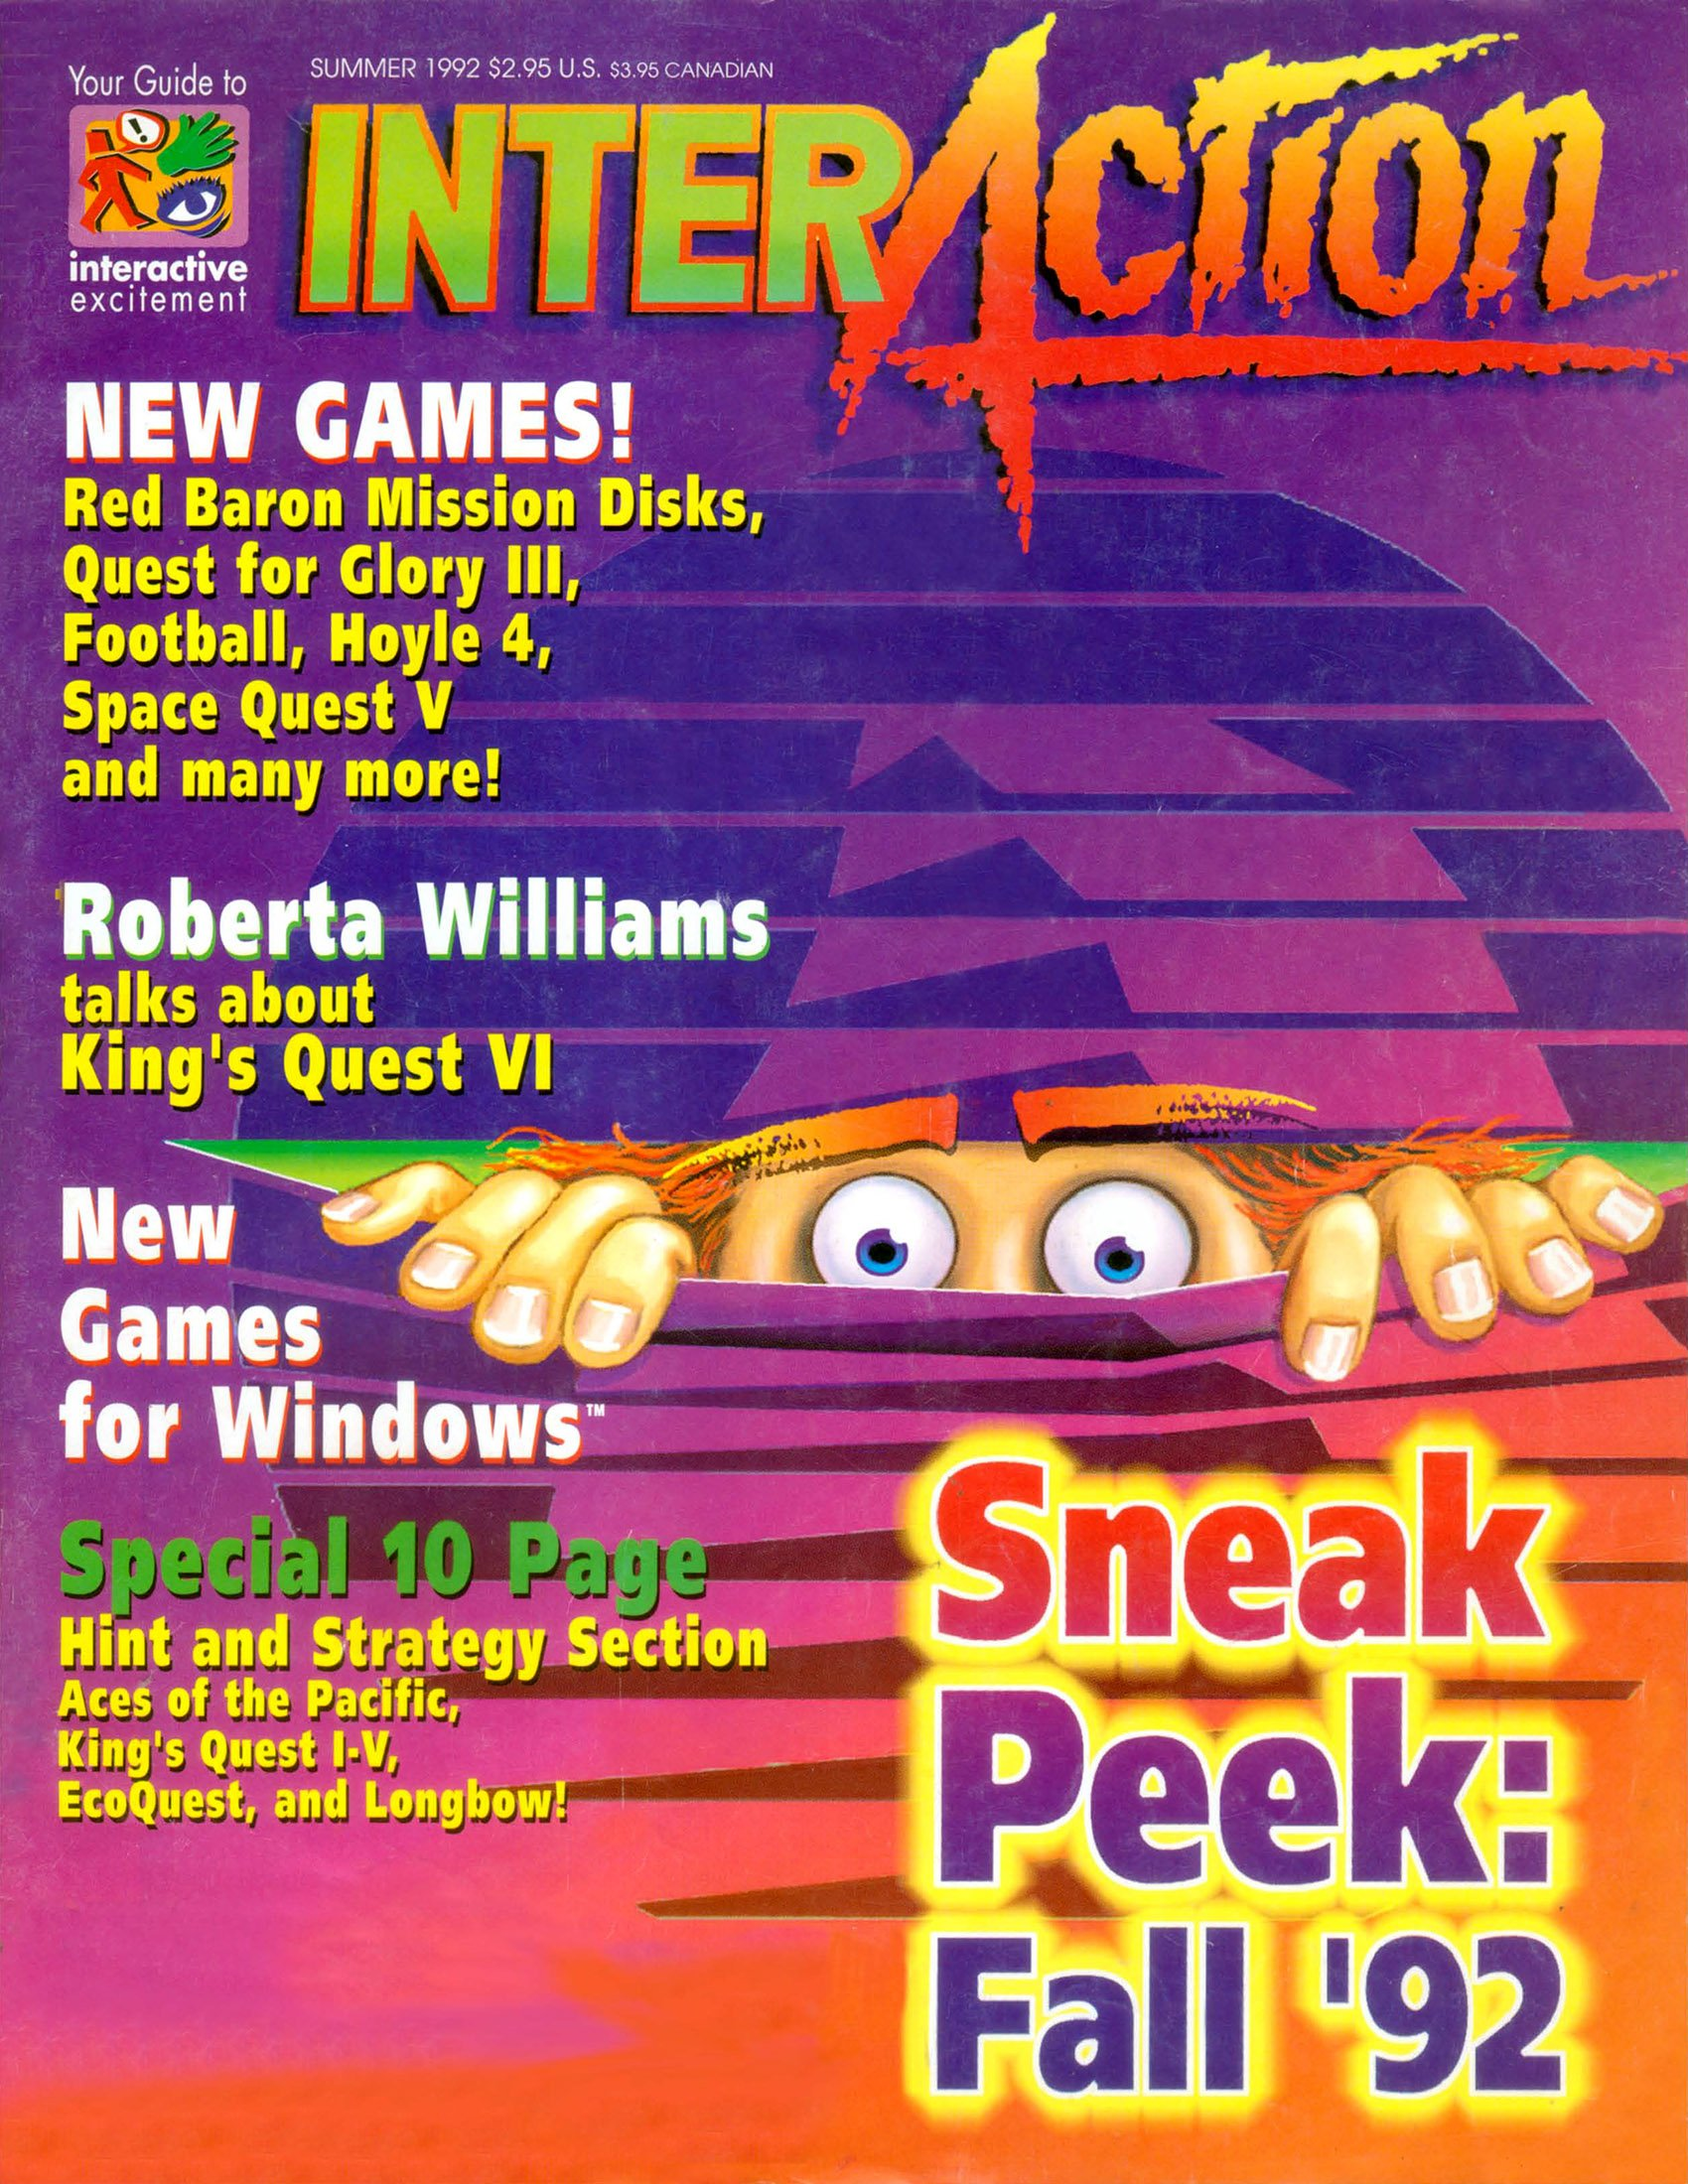 InterAction Issue 14 (Volume 5 Number 2) Summer 1992